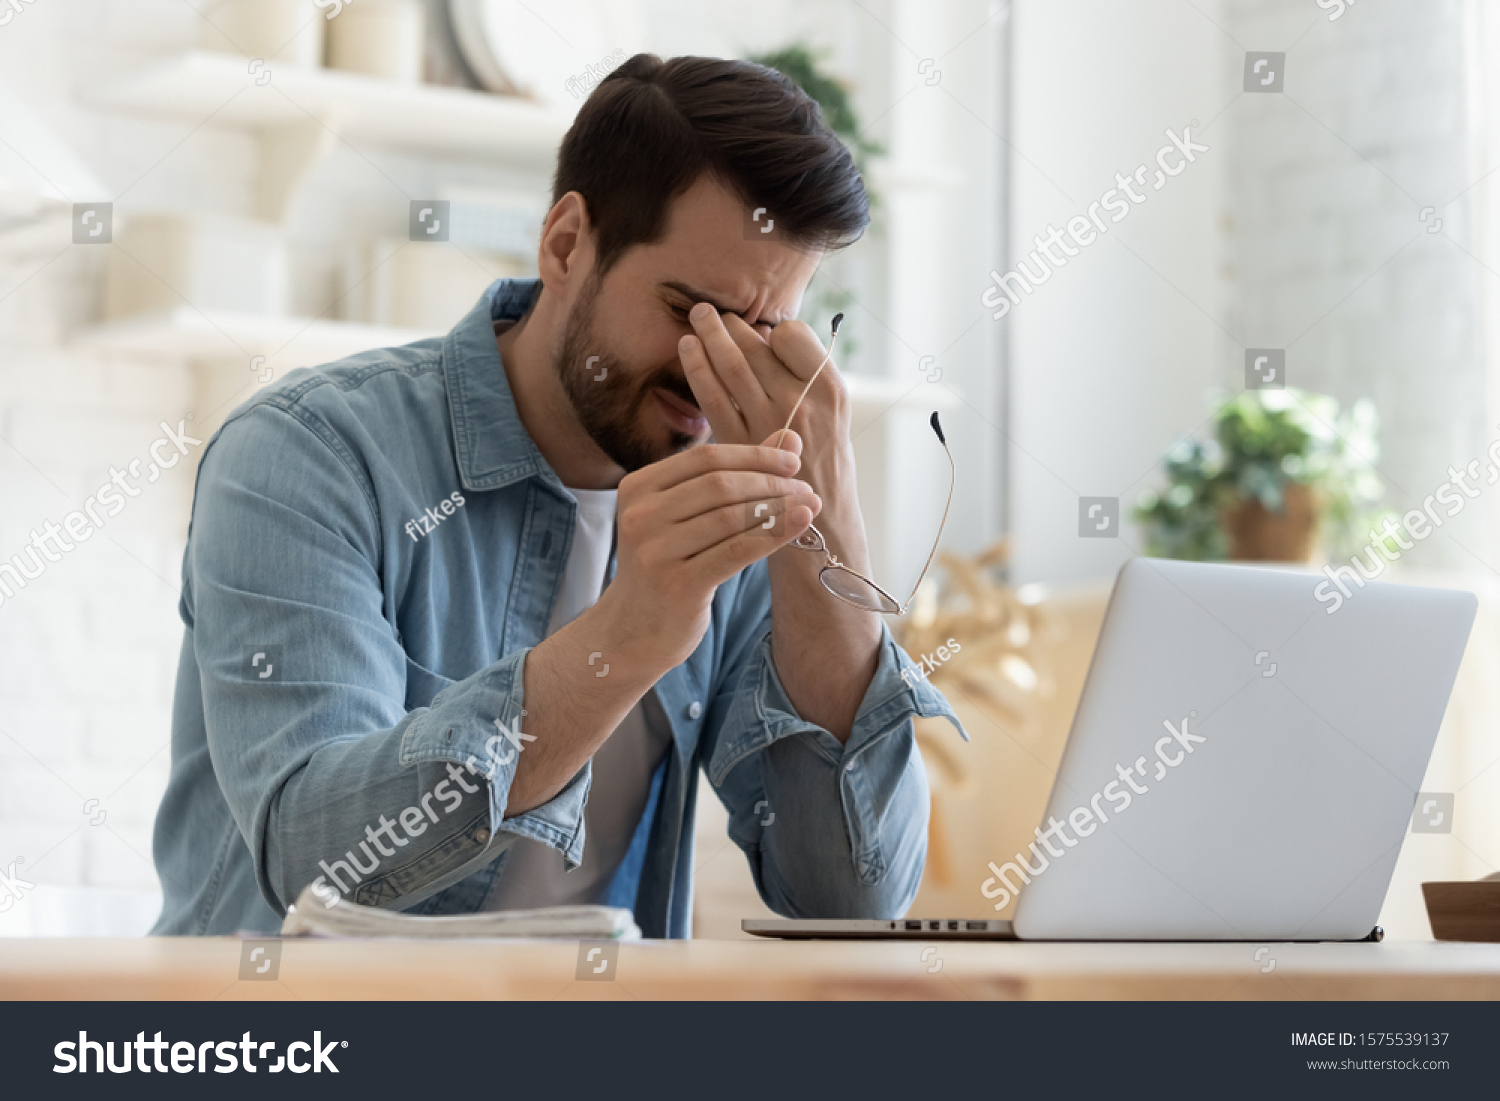 Tired young man feel pain eyestrain holding glasses rubbing dry irritated eyes fatigued from computer work, stressed man suffer from headache bad vision sight problem sit at home table using laptop #1575539137